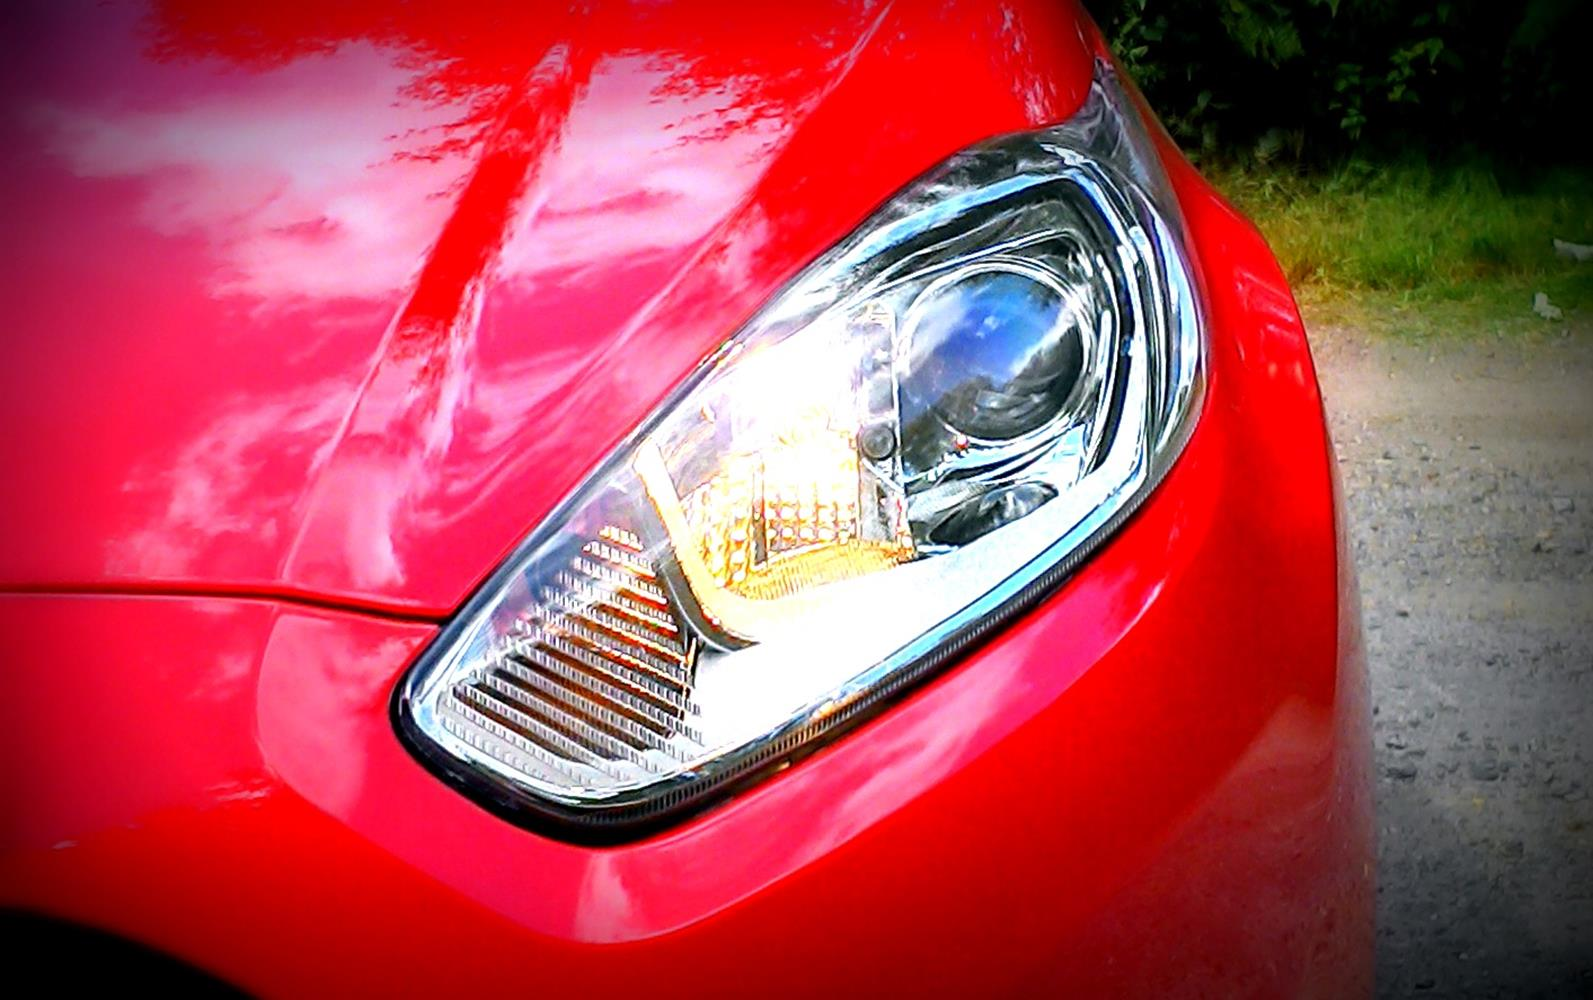 Ford Fiesta Red Black Edition 2014 Headlight Detail Phil